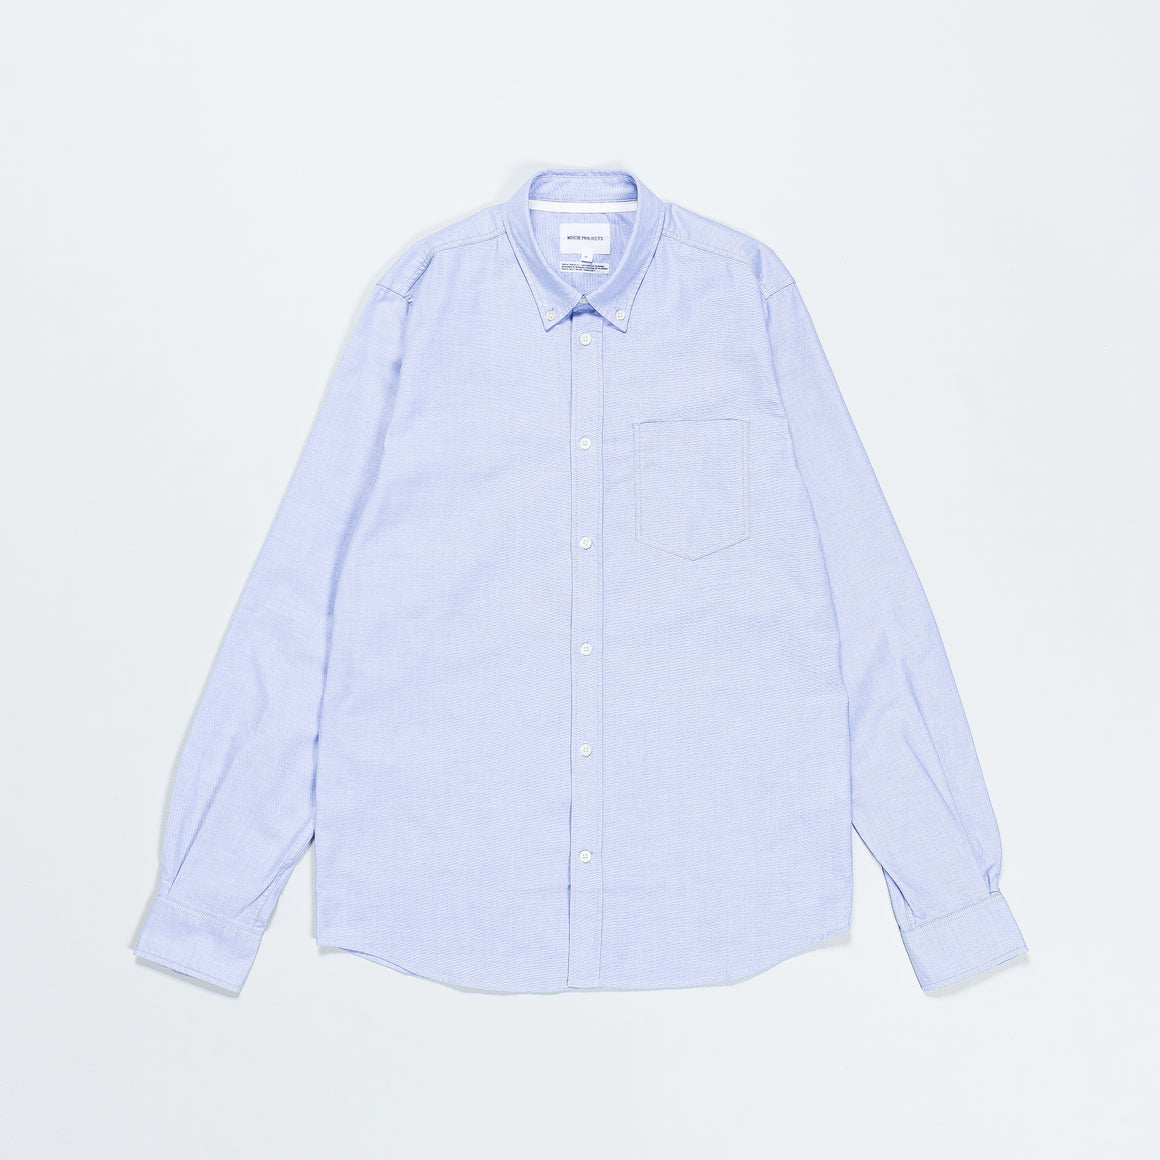 Norse Projects - Anton Oxford - Pale Blue - Up There